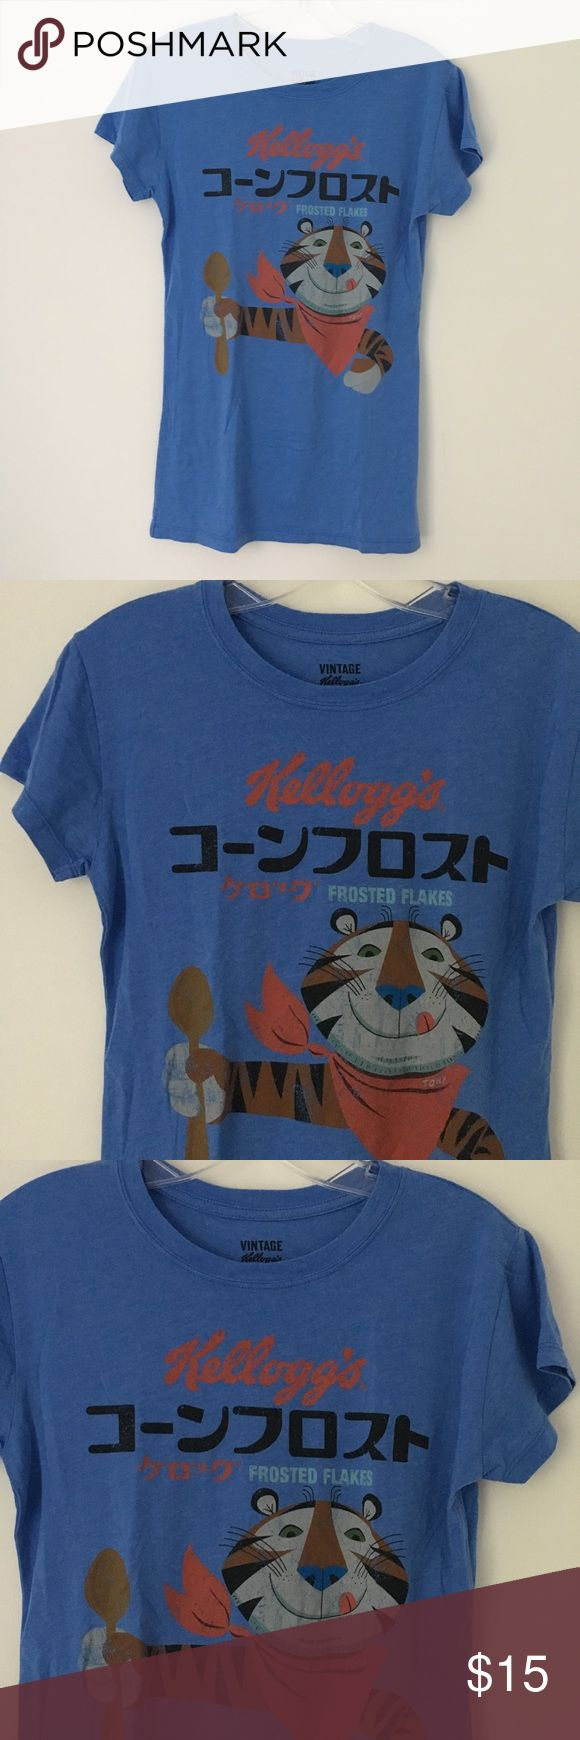 "RARE CUTE FROSTED FLAKES CEREAL PROMO TEE SHIRT !! Tags: Awesome Unique Unusual RARE 2010 Kellogg's Frosted Flakes Made In Thailand Distressed Vintage Faded Style Graphic Design Pattern Print Tony the Tiger Breakfast Cereal Promo SOFT Tee Shirt Top.  Brand new. Never used. NO flaws.  Size: Tagged YOUTH Large, will fit women's XS or Small.  Measurements: Chest- 16"" across • Length- 26.5"" long.  •Smoke-free + Pet-friendly (dogs) facility. •NO holds, returns or refunds allowed. •The price is…"